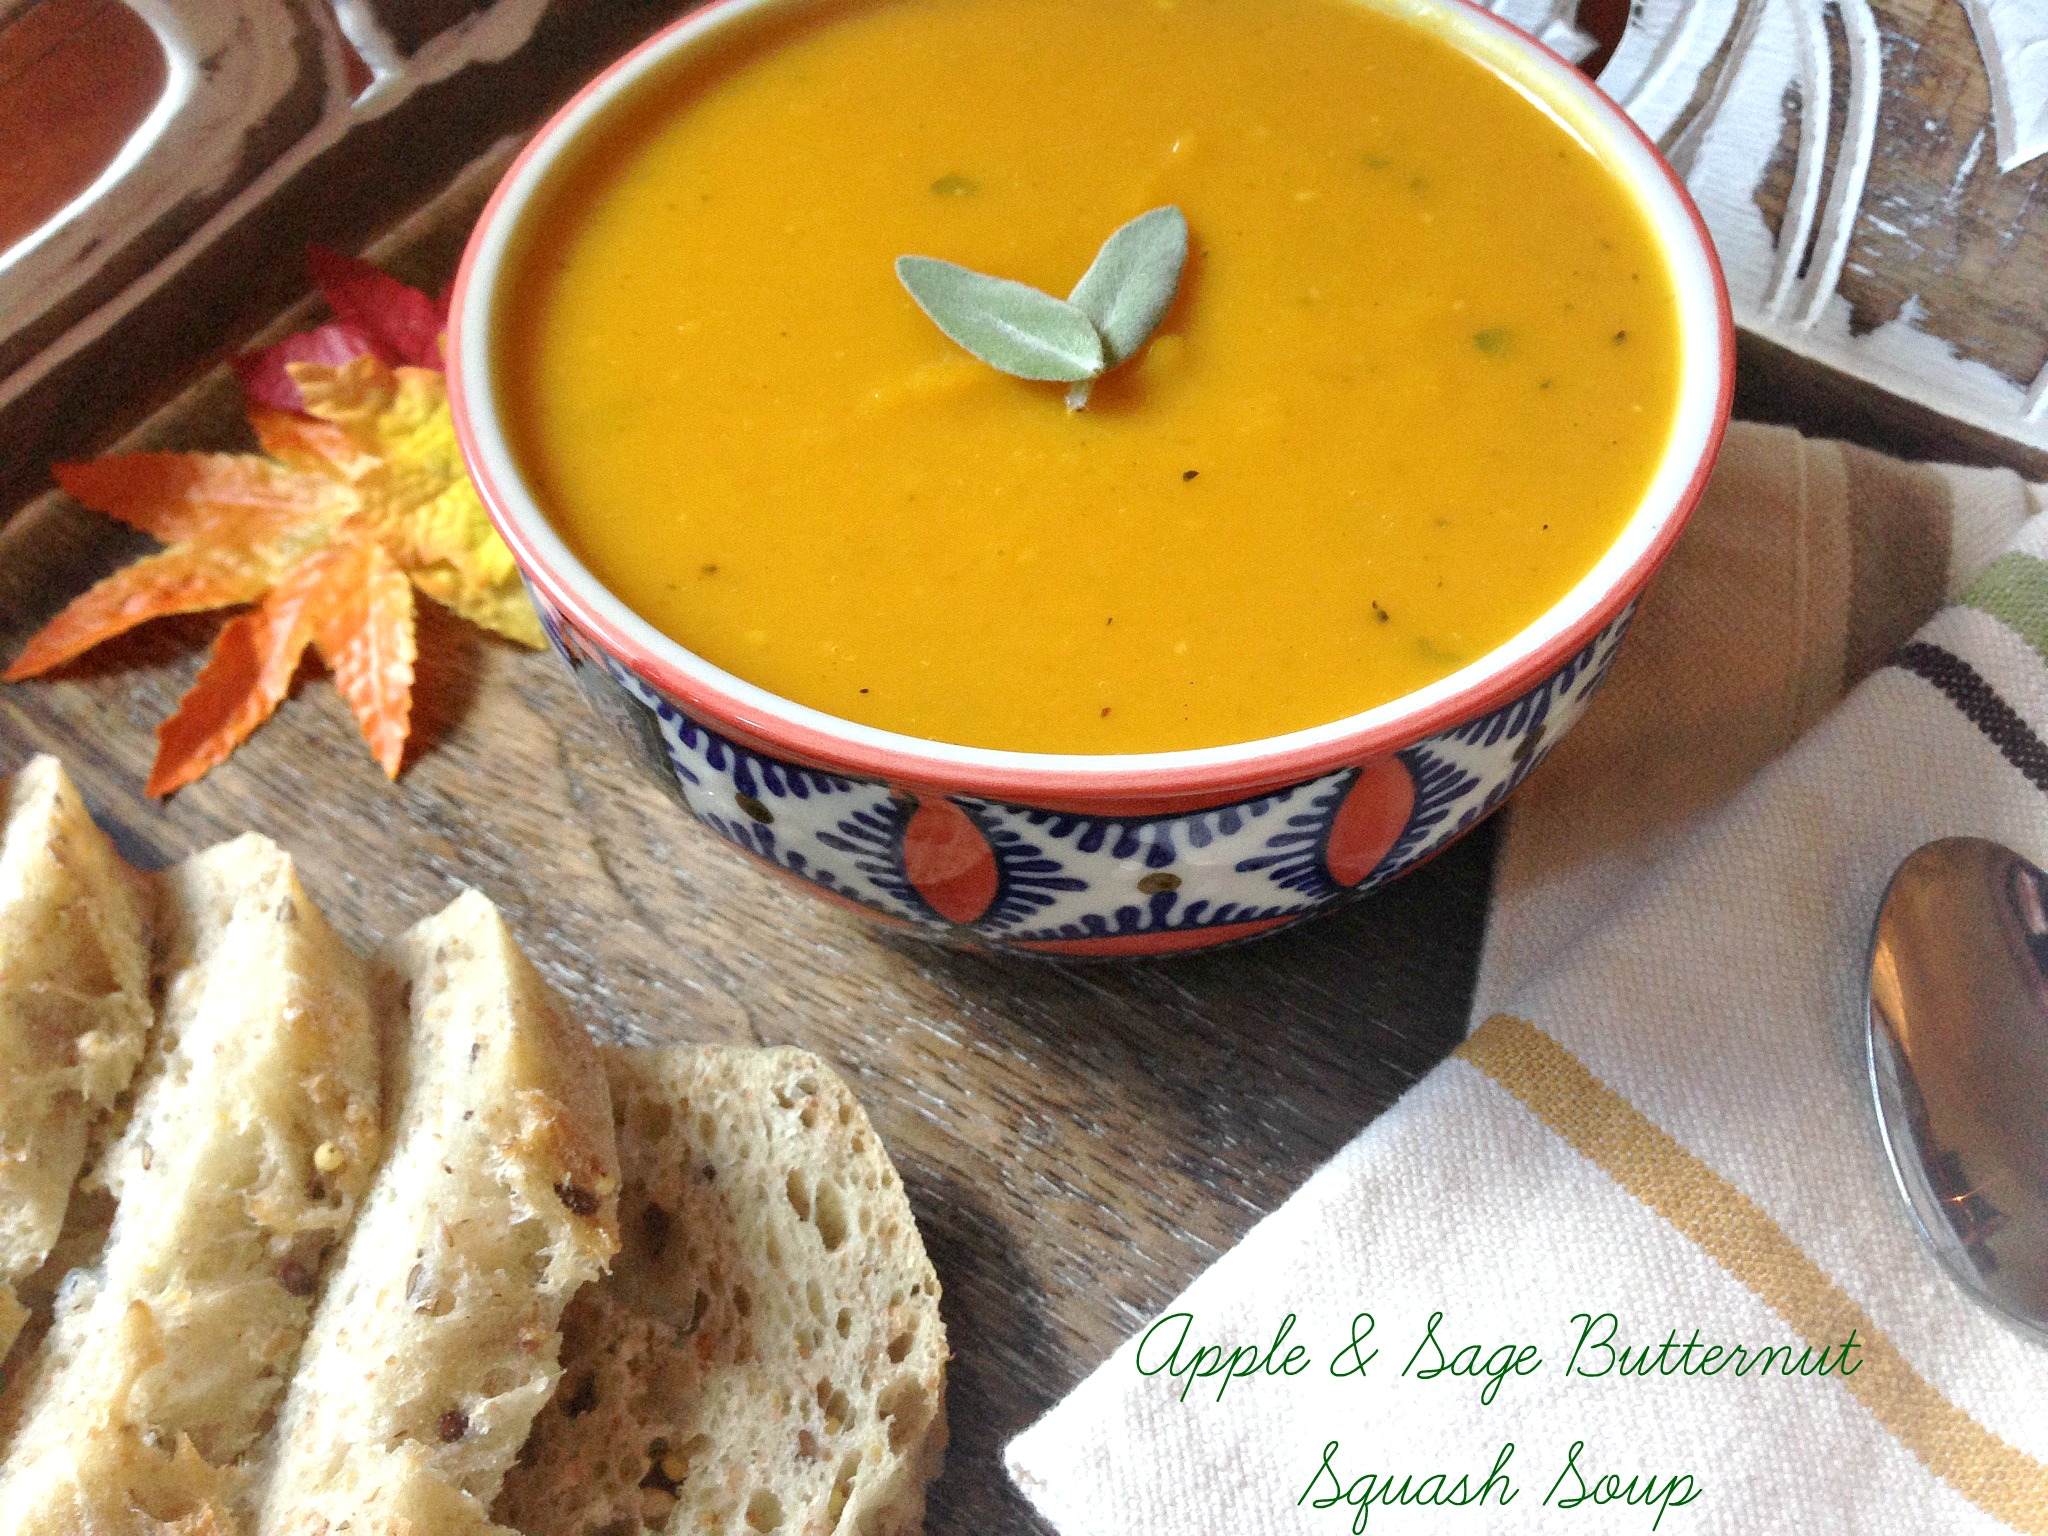 Apple and Sage Butternut Squash Soup